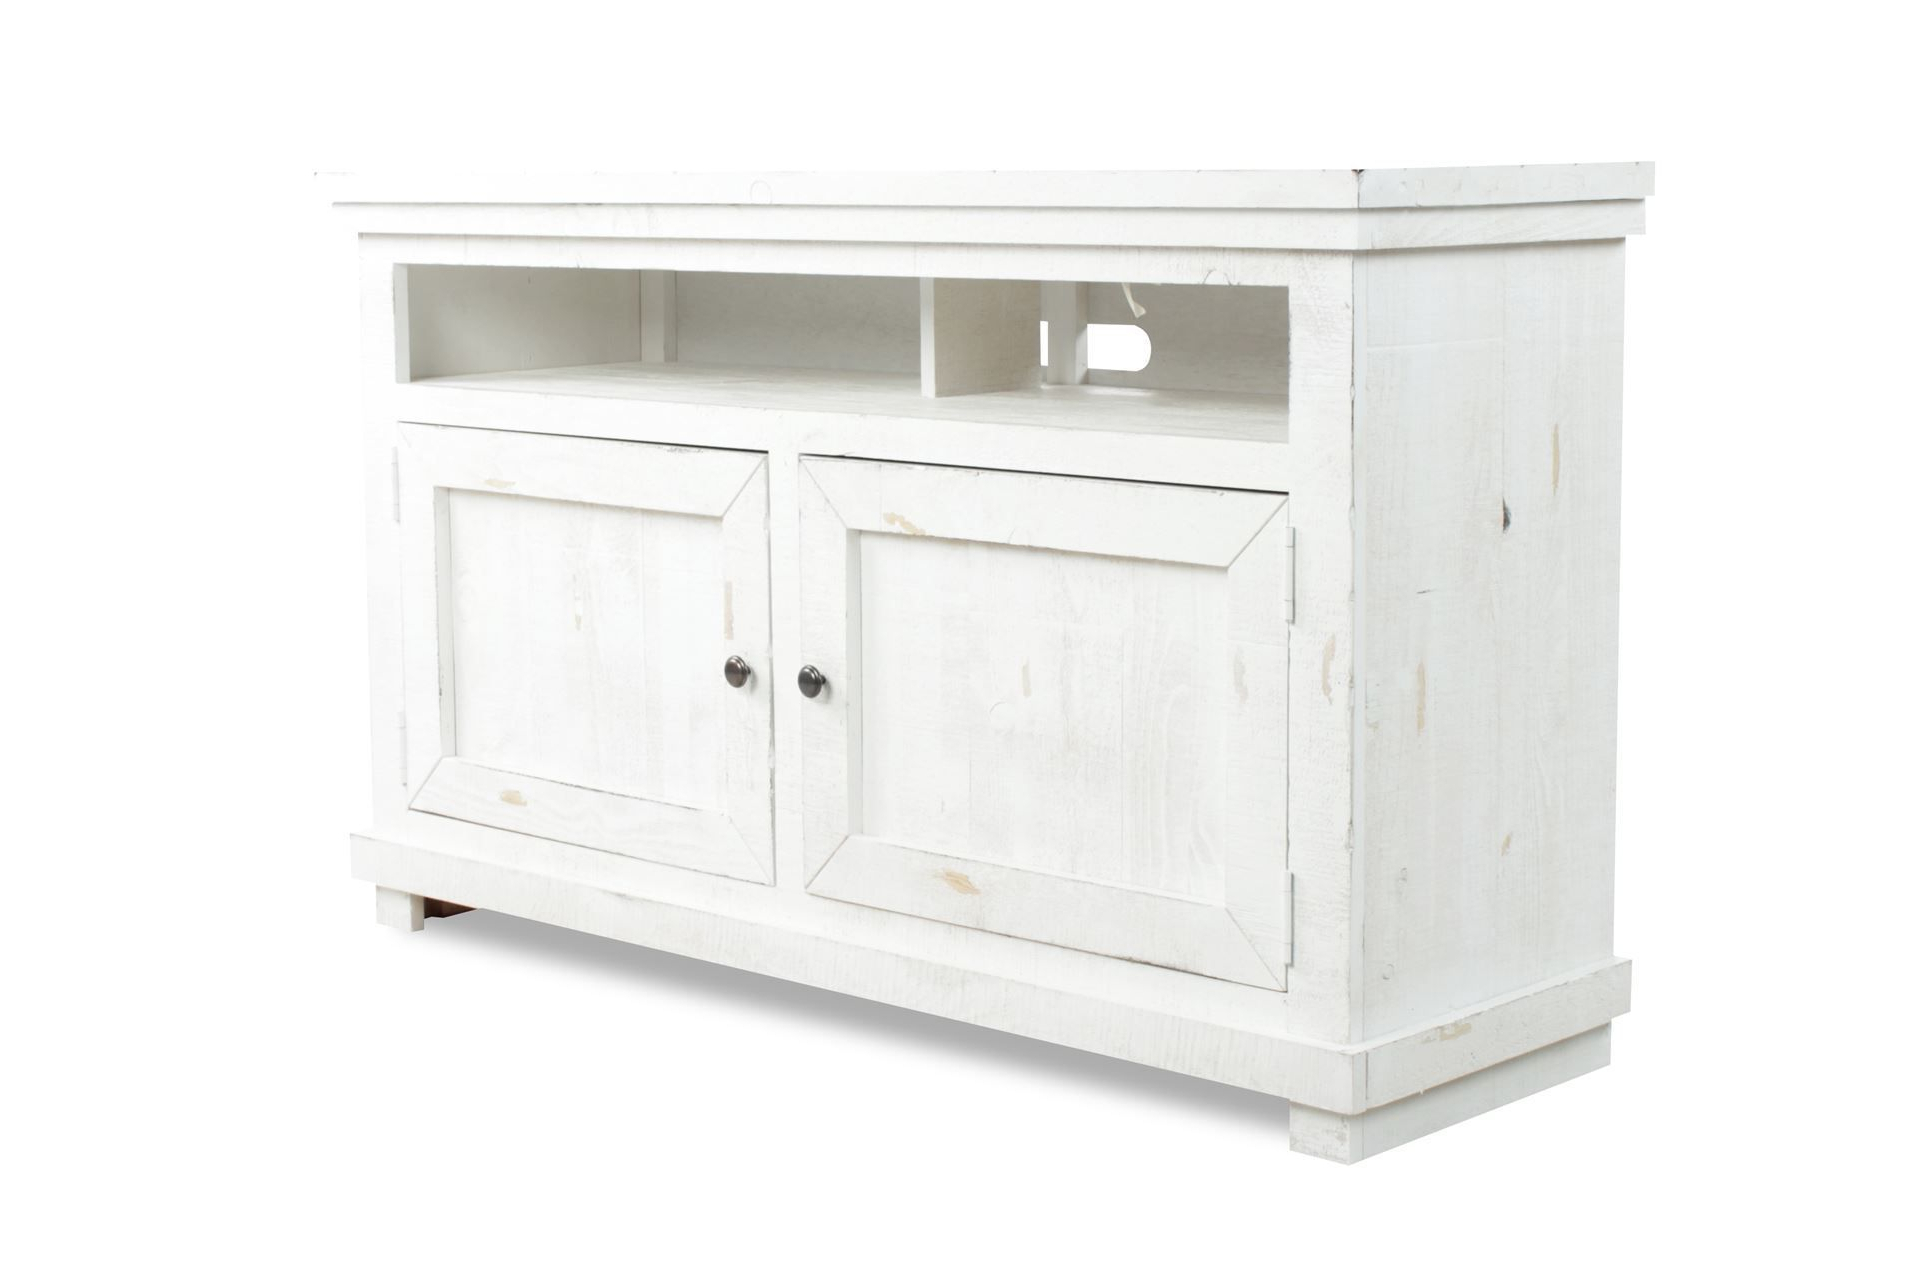 54 Inch Tv Stand, Sinclair White, Weathered White | Consoles, Tv With Sinclair White 54 Inch Tv Stands (View 3 of 20)